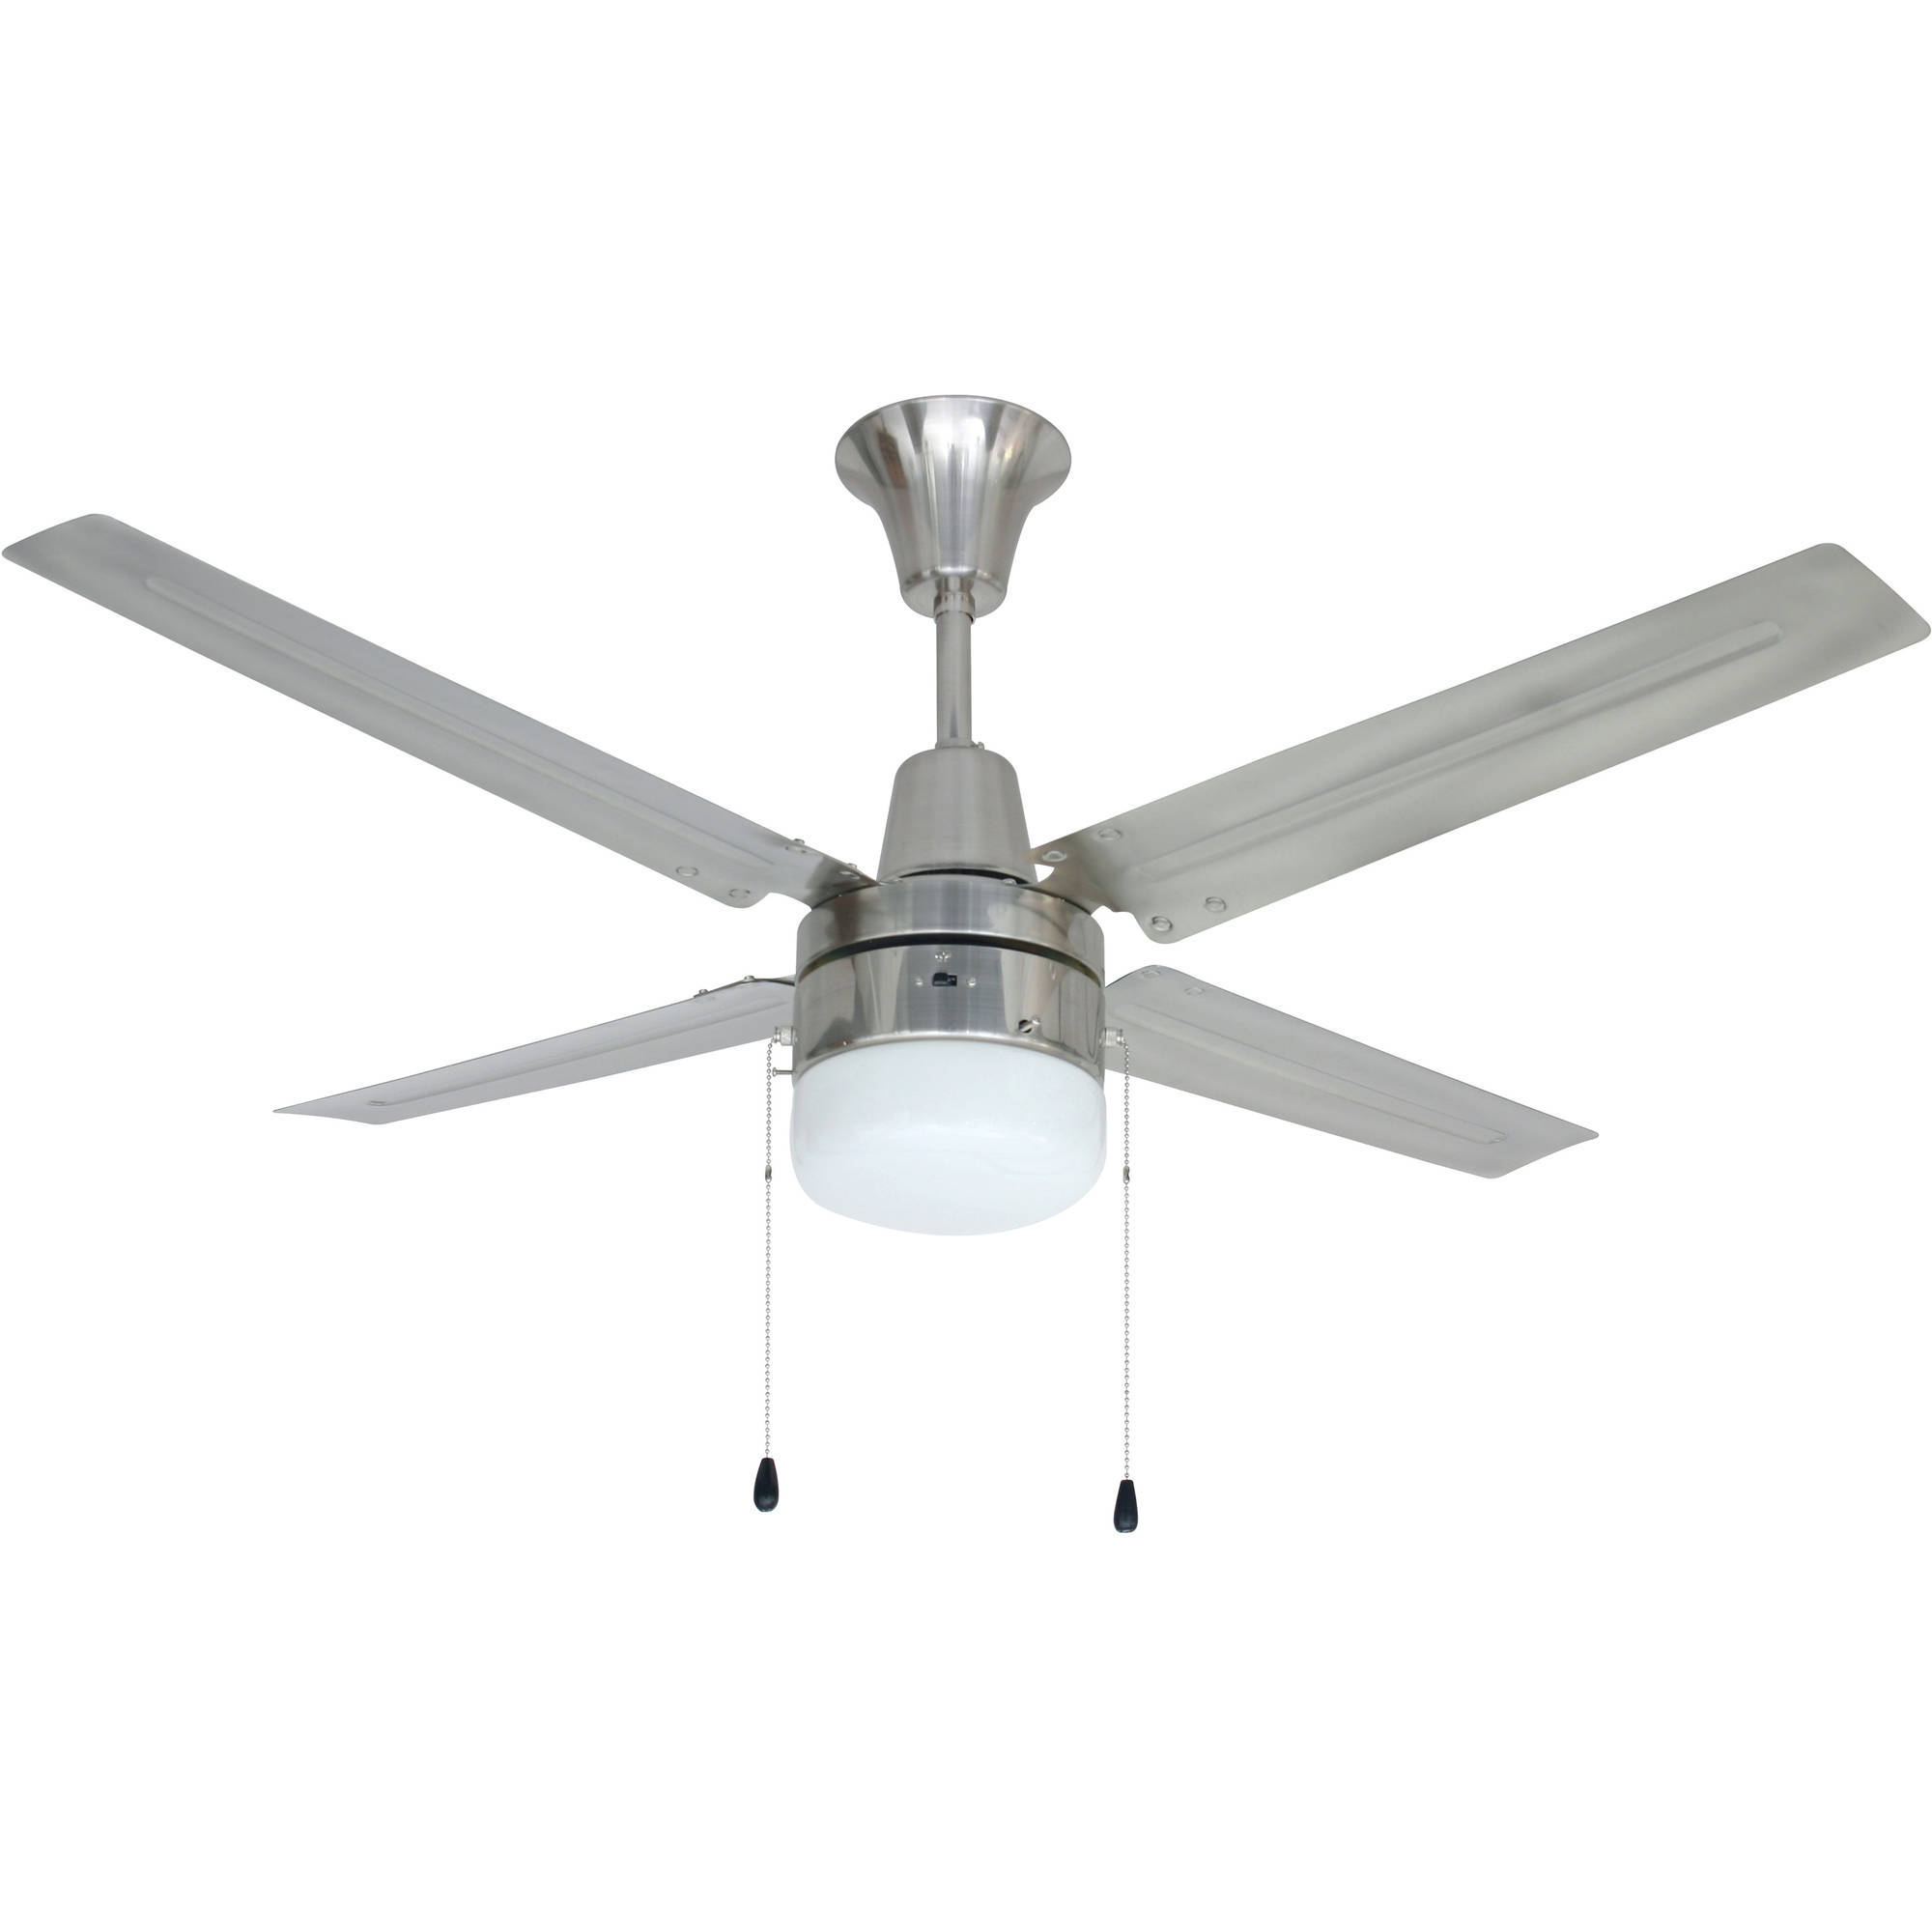 "Litex Industries Urbana 48"" Hangdown Ceiling Fan Brushed Chrome"